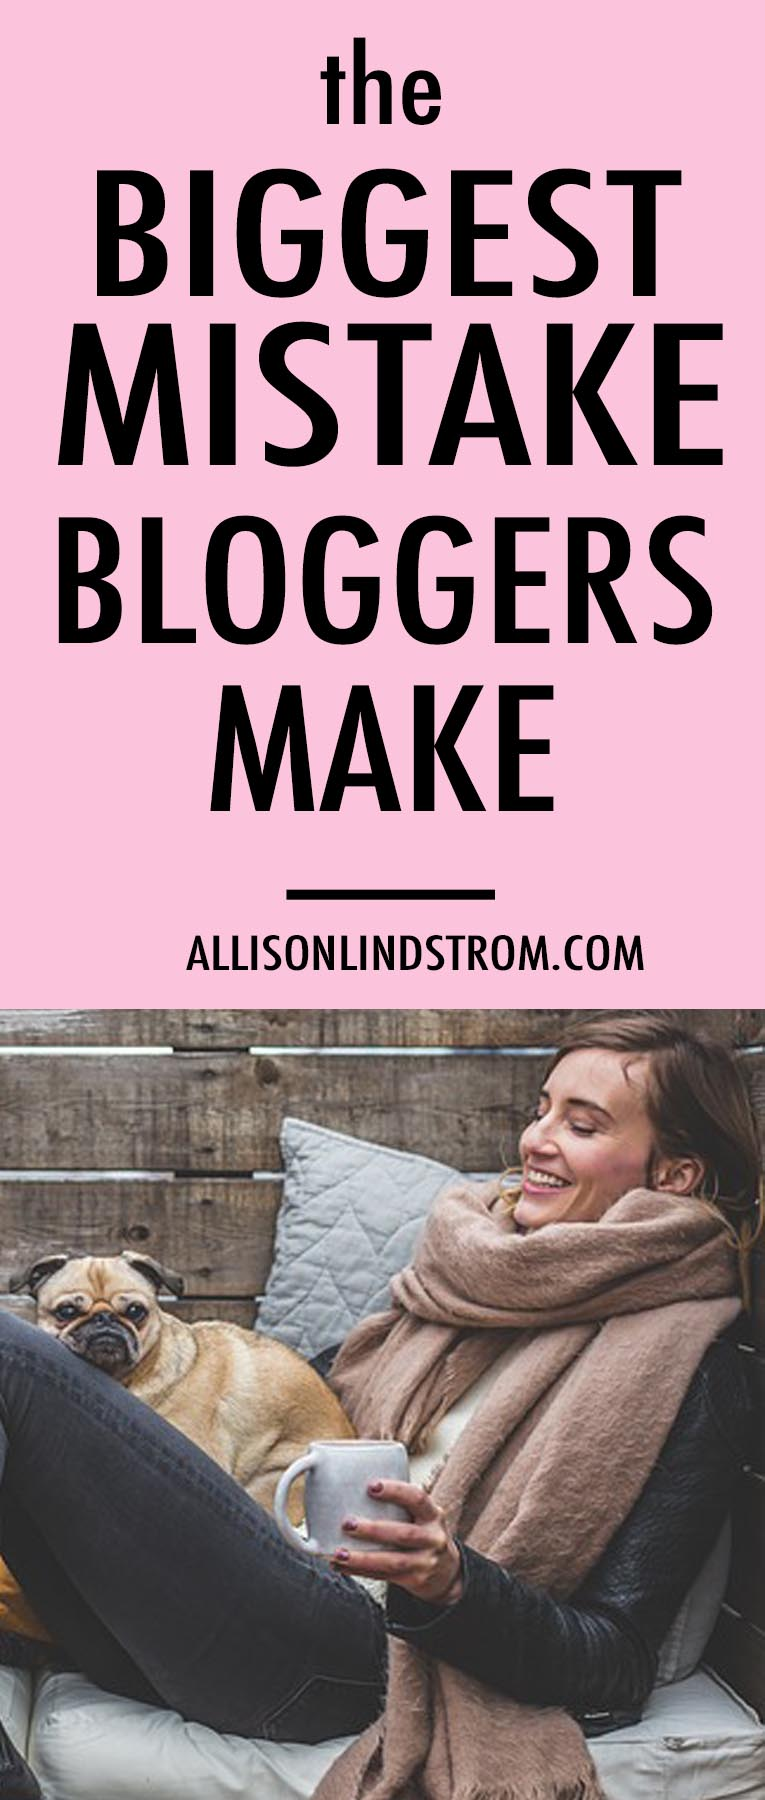 We all want to make money blogging but sometimes WE are the very reason it's not happening. If you've been writing blogs for 10 years or only 10 minutes, then you need to know about one of the biggest mistakes bloggers make to stunt their business growth. ● BIGGEST MISTAKE BLOGGERS MAKE ● BLOGGING TIPS ● WRITING BLOGS